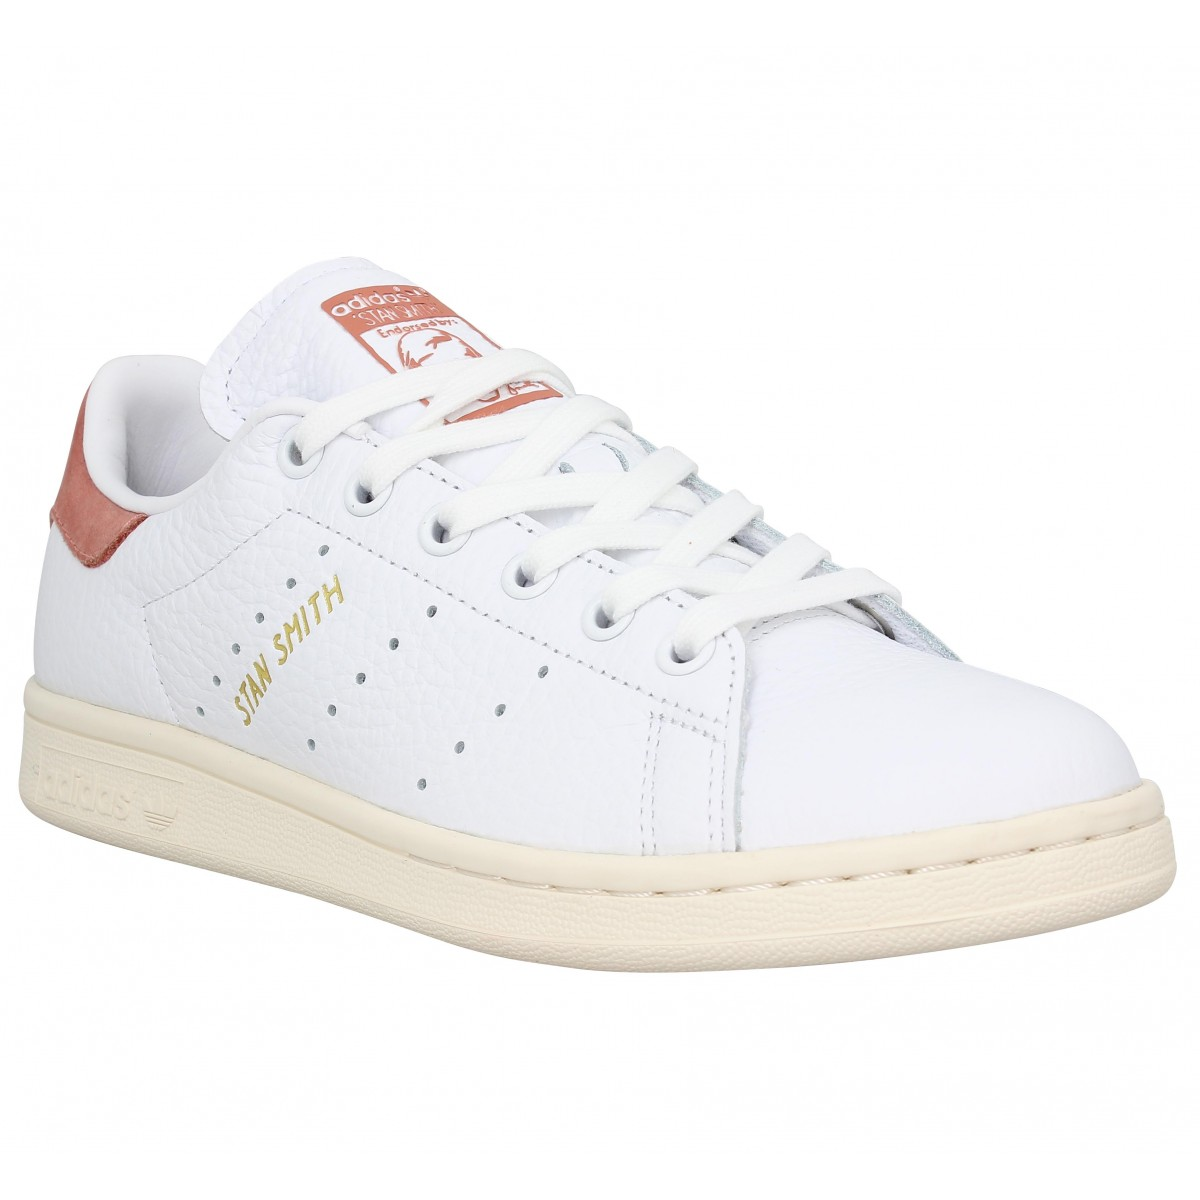 0ed6eec45aef8 Accueil ?? Centre ?? Indre. adidas stan smith femme blanche et rose  jaeyyvjmho